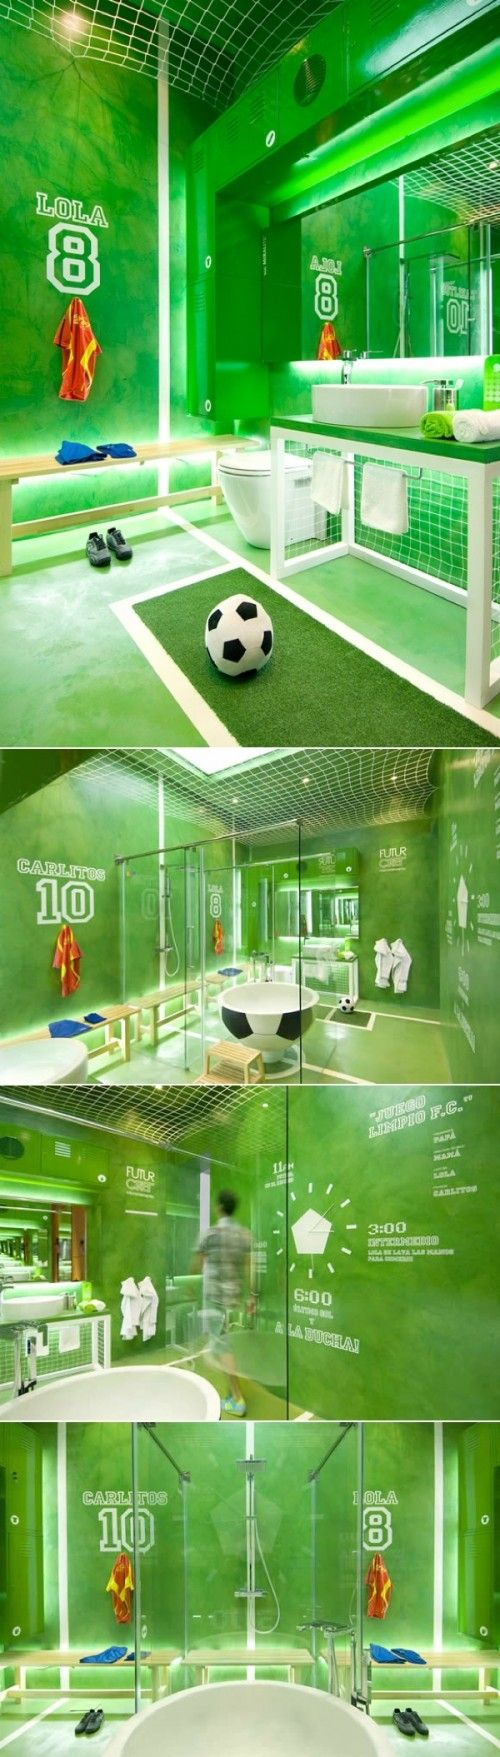 10 Boys Soccer Room Ideas